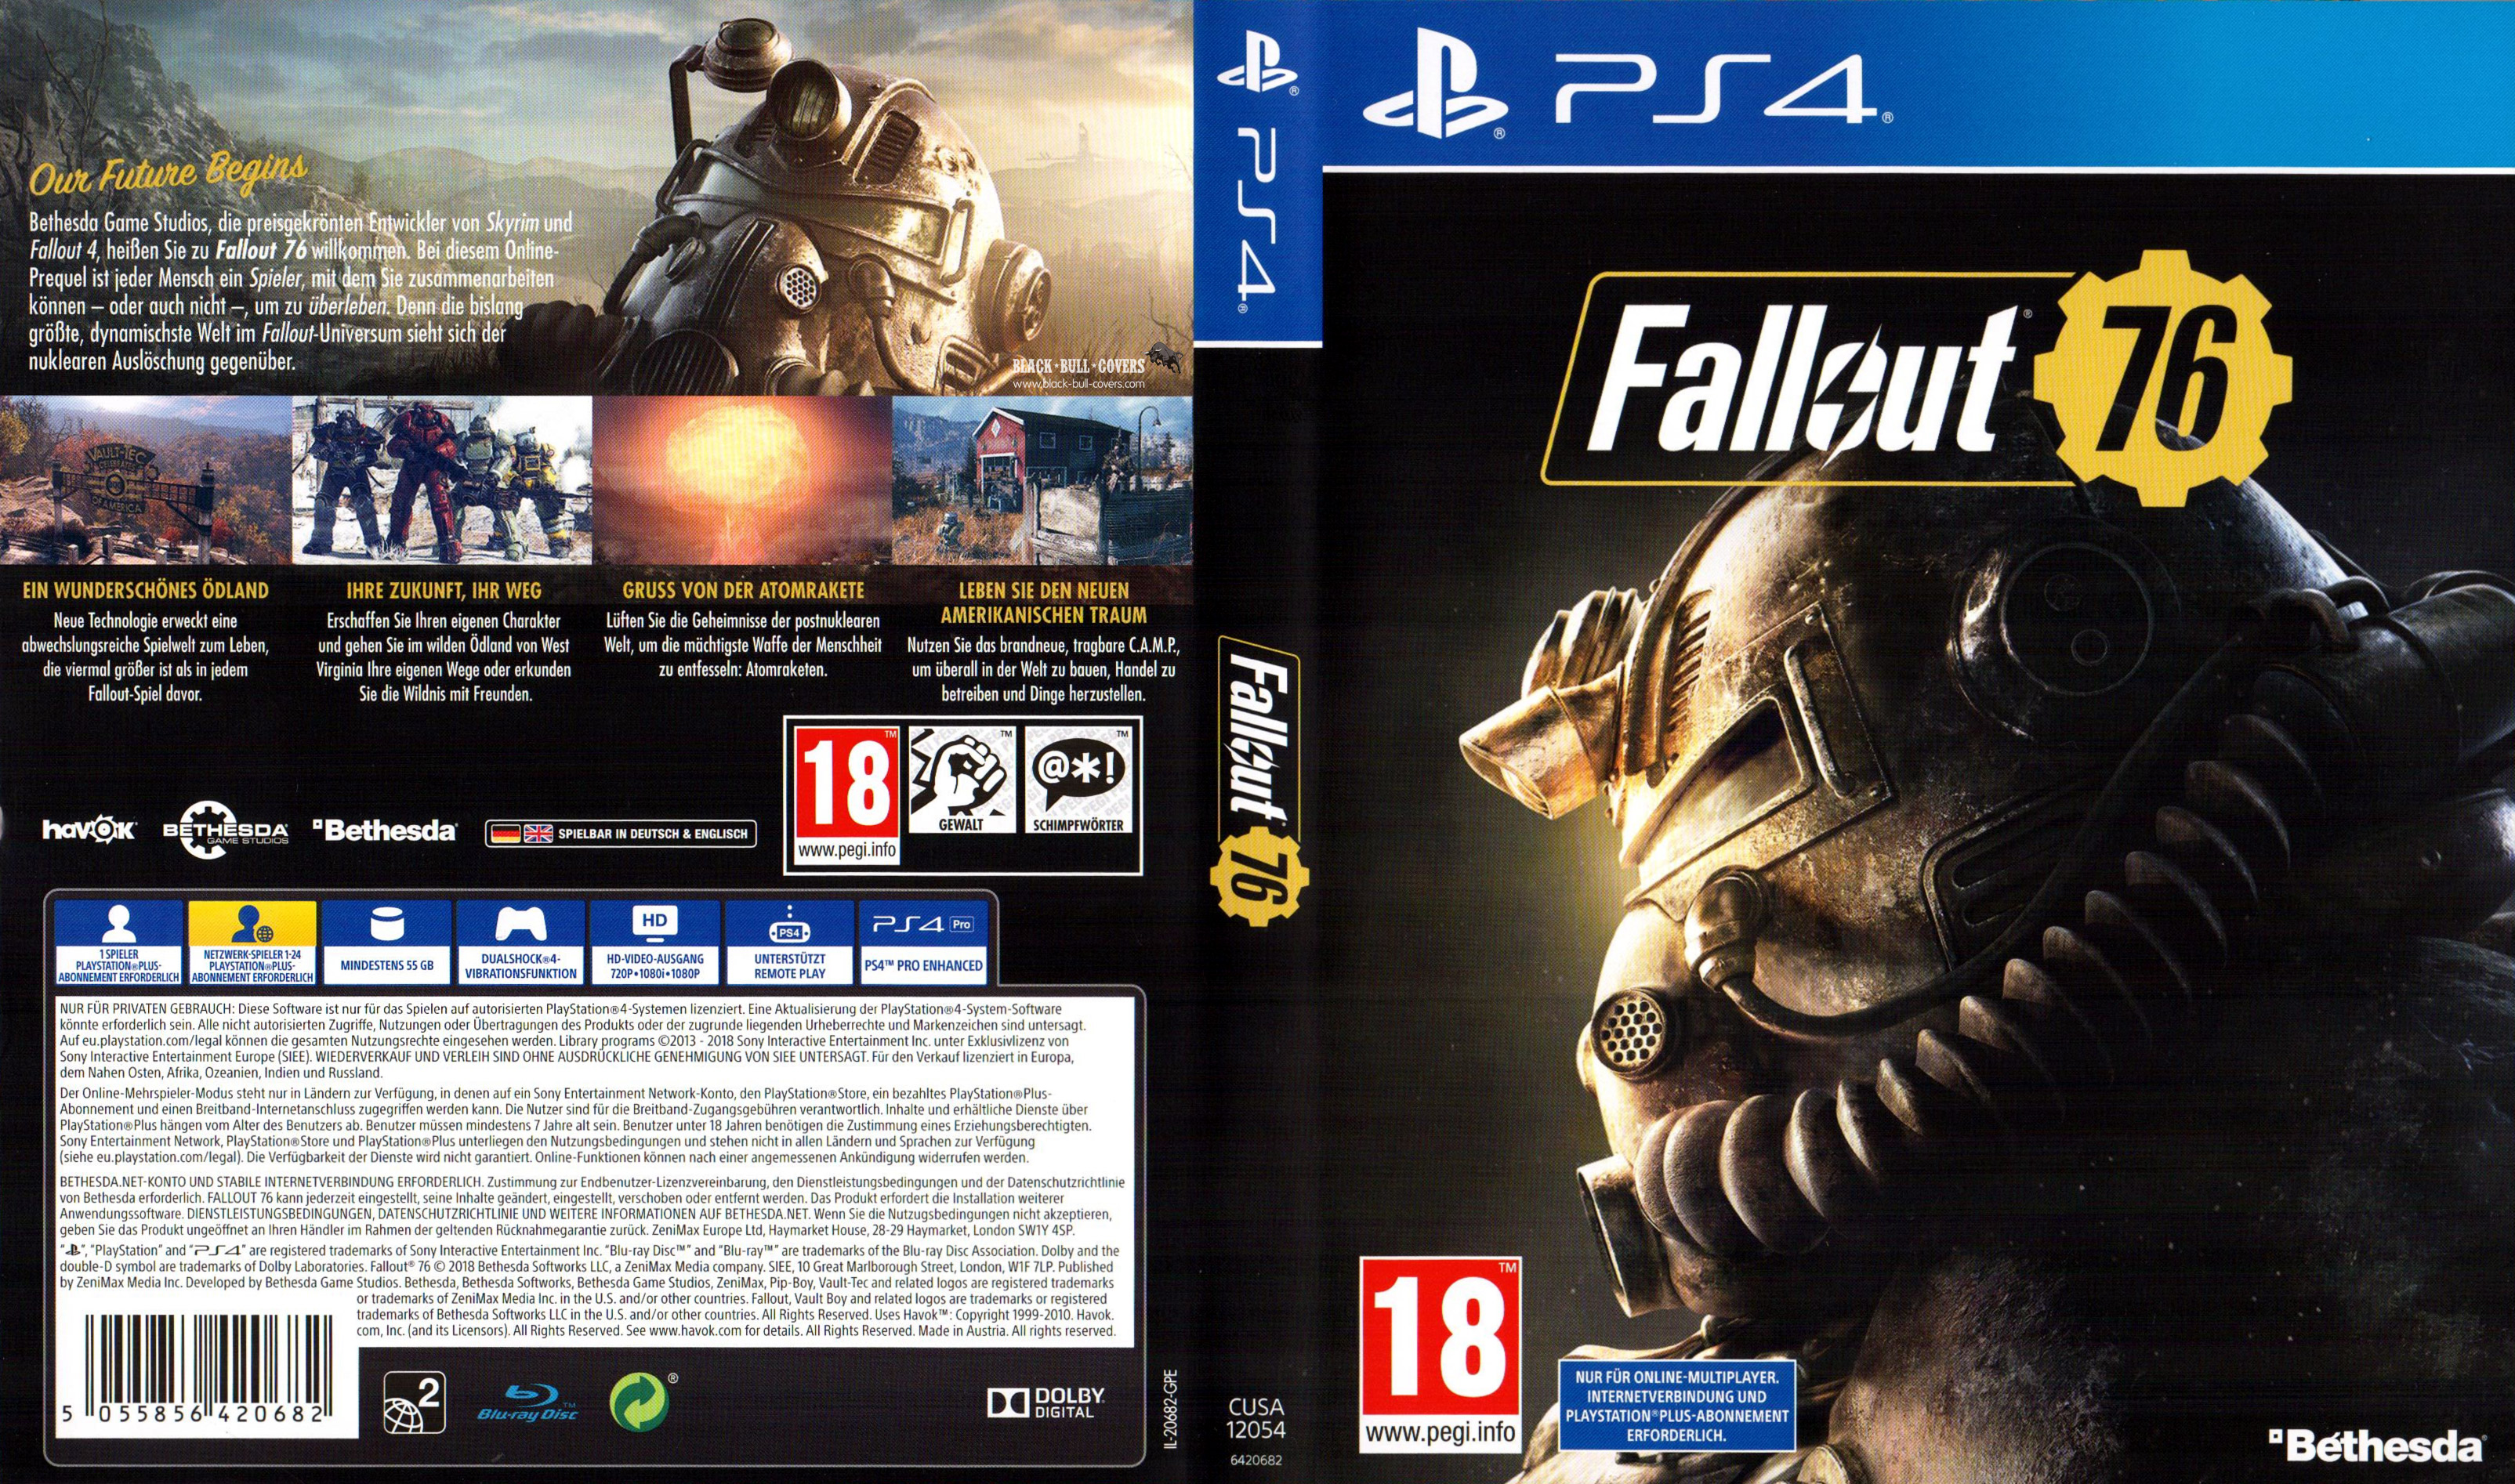 photo regarding Printable Game Covers called Playstation 4 Addresses - This is for the Gamers